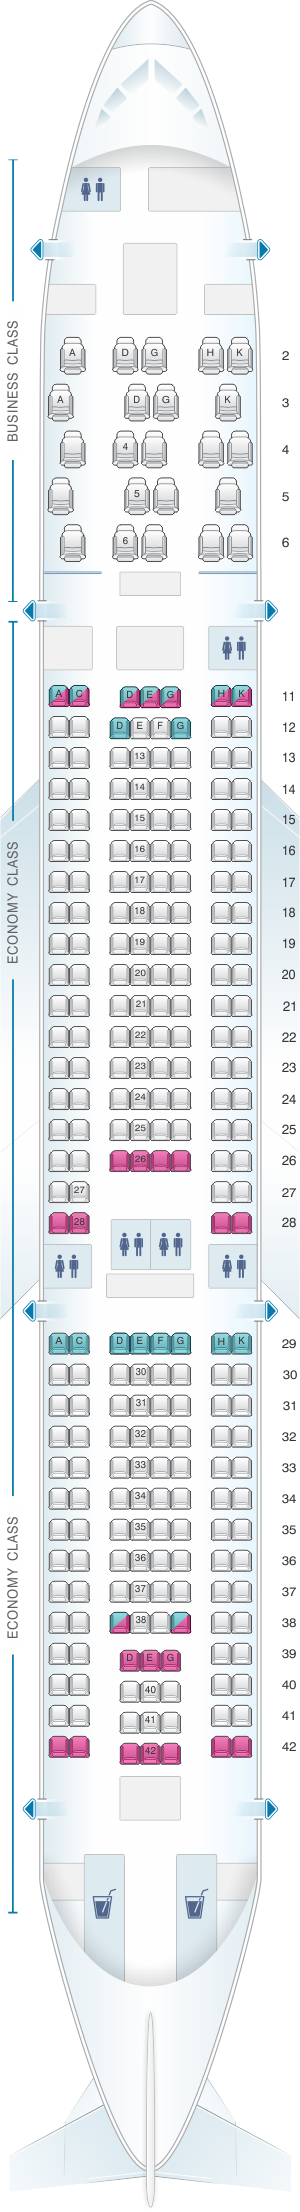 Seat map for Aer Lingus Airbus A330 200 Config. 2